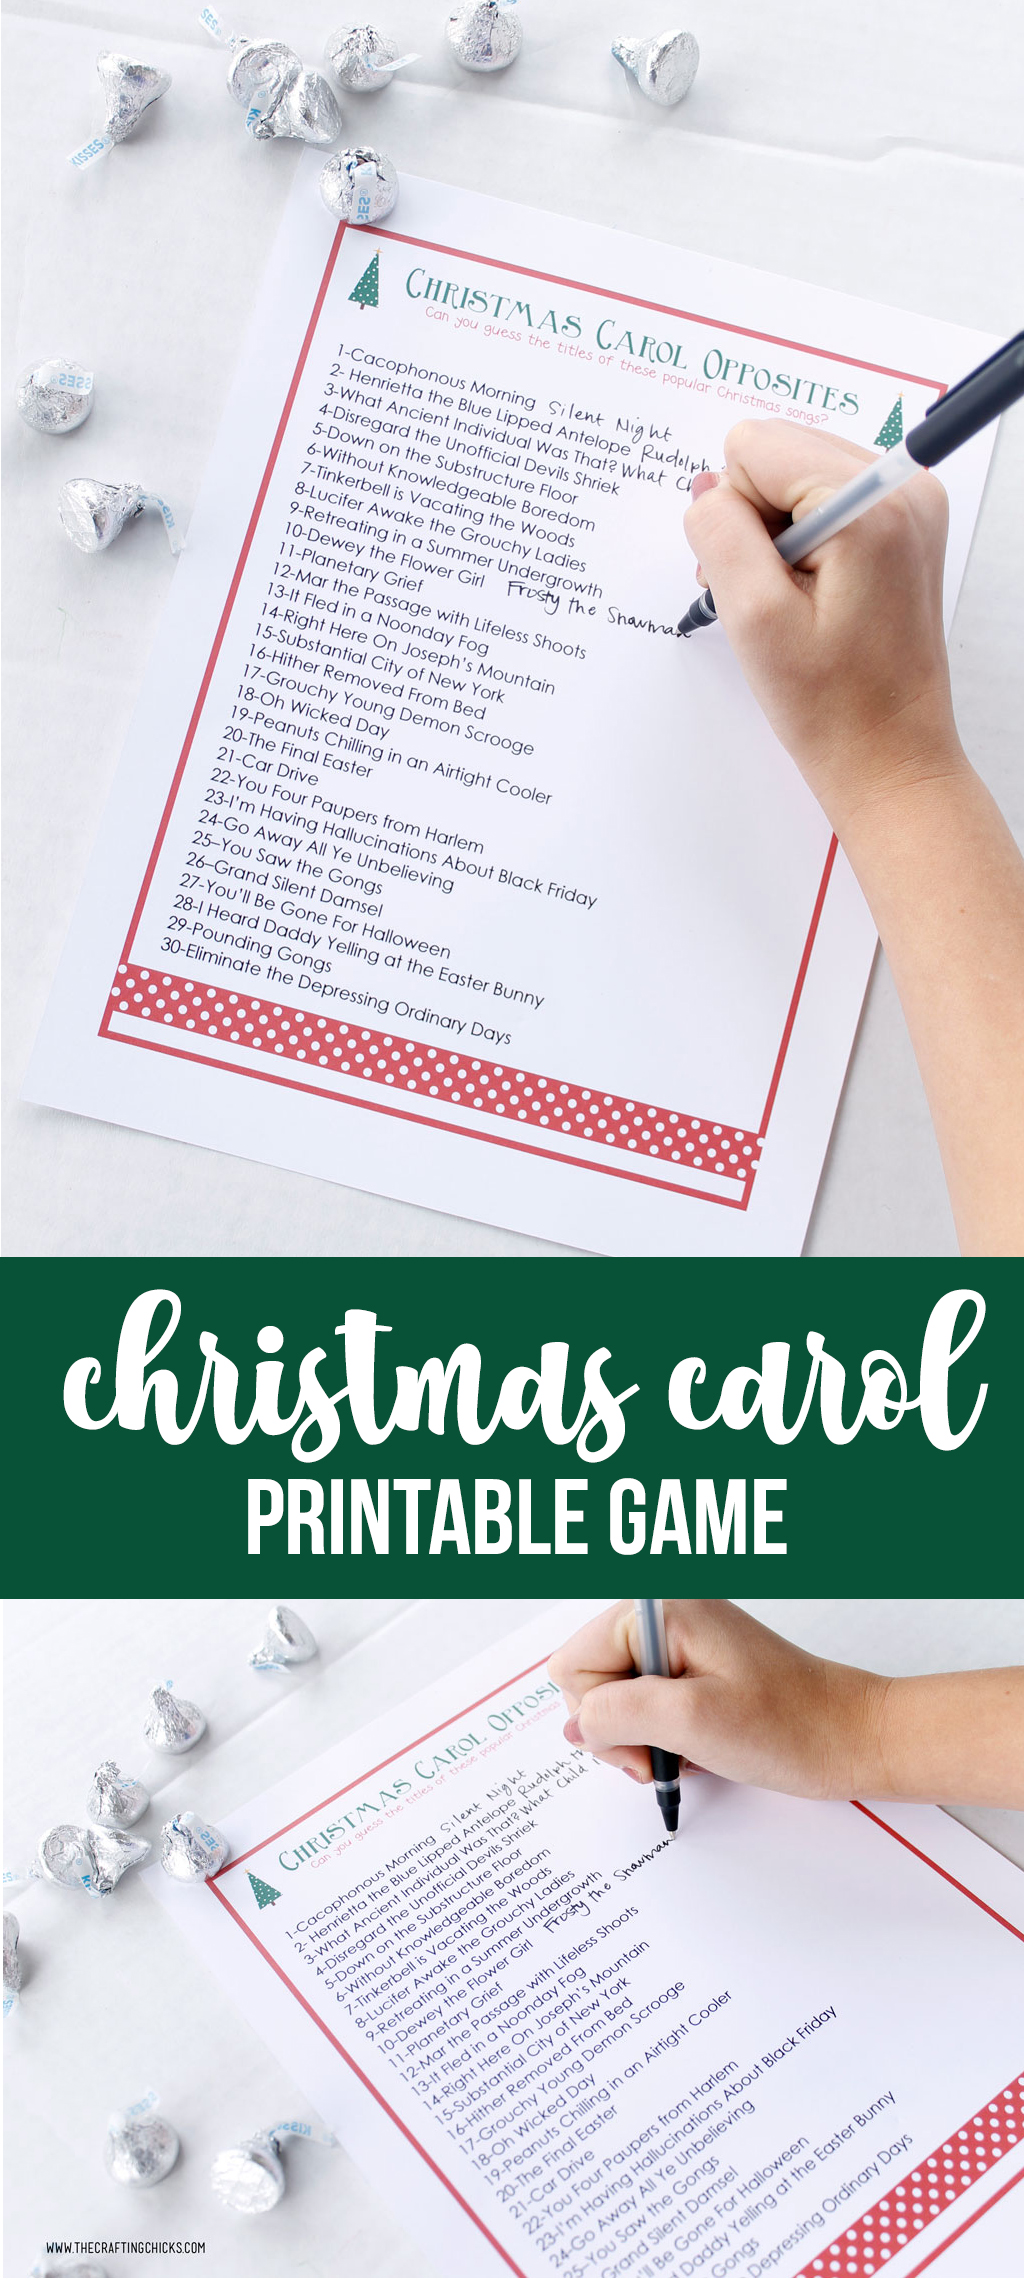 photo relating to Guess the Christmas Song Printable named Xmas Carol Opposites Activity